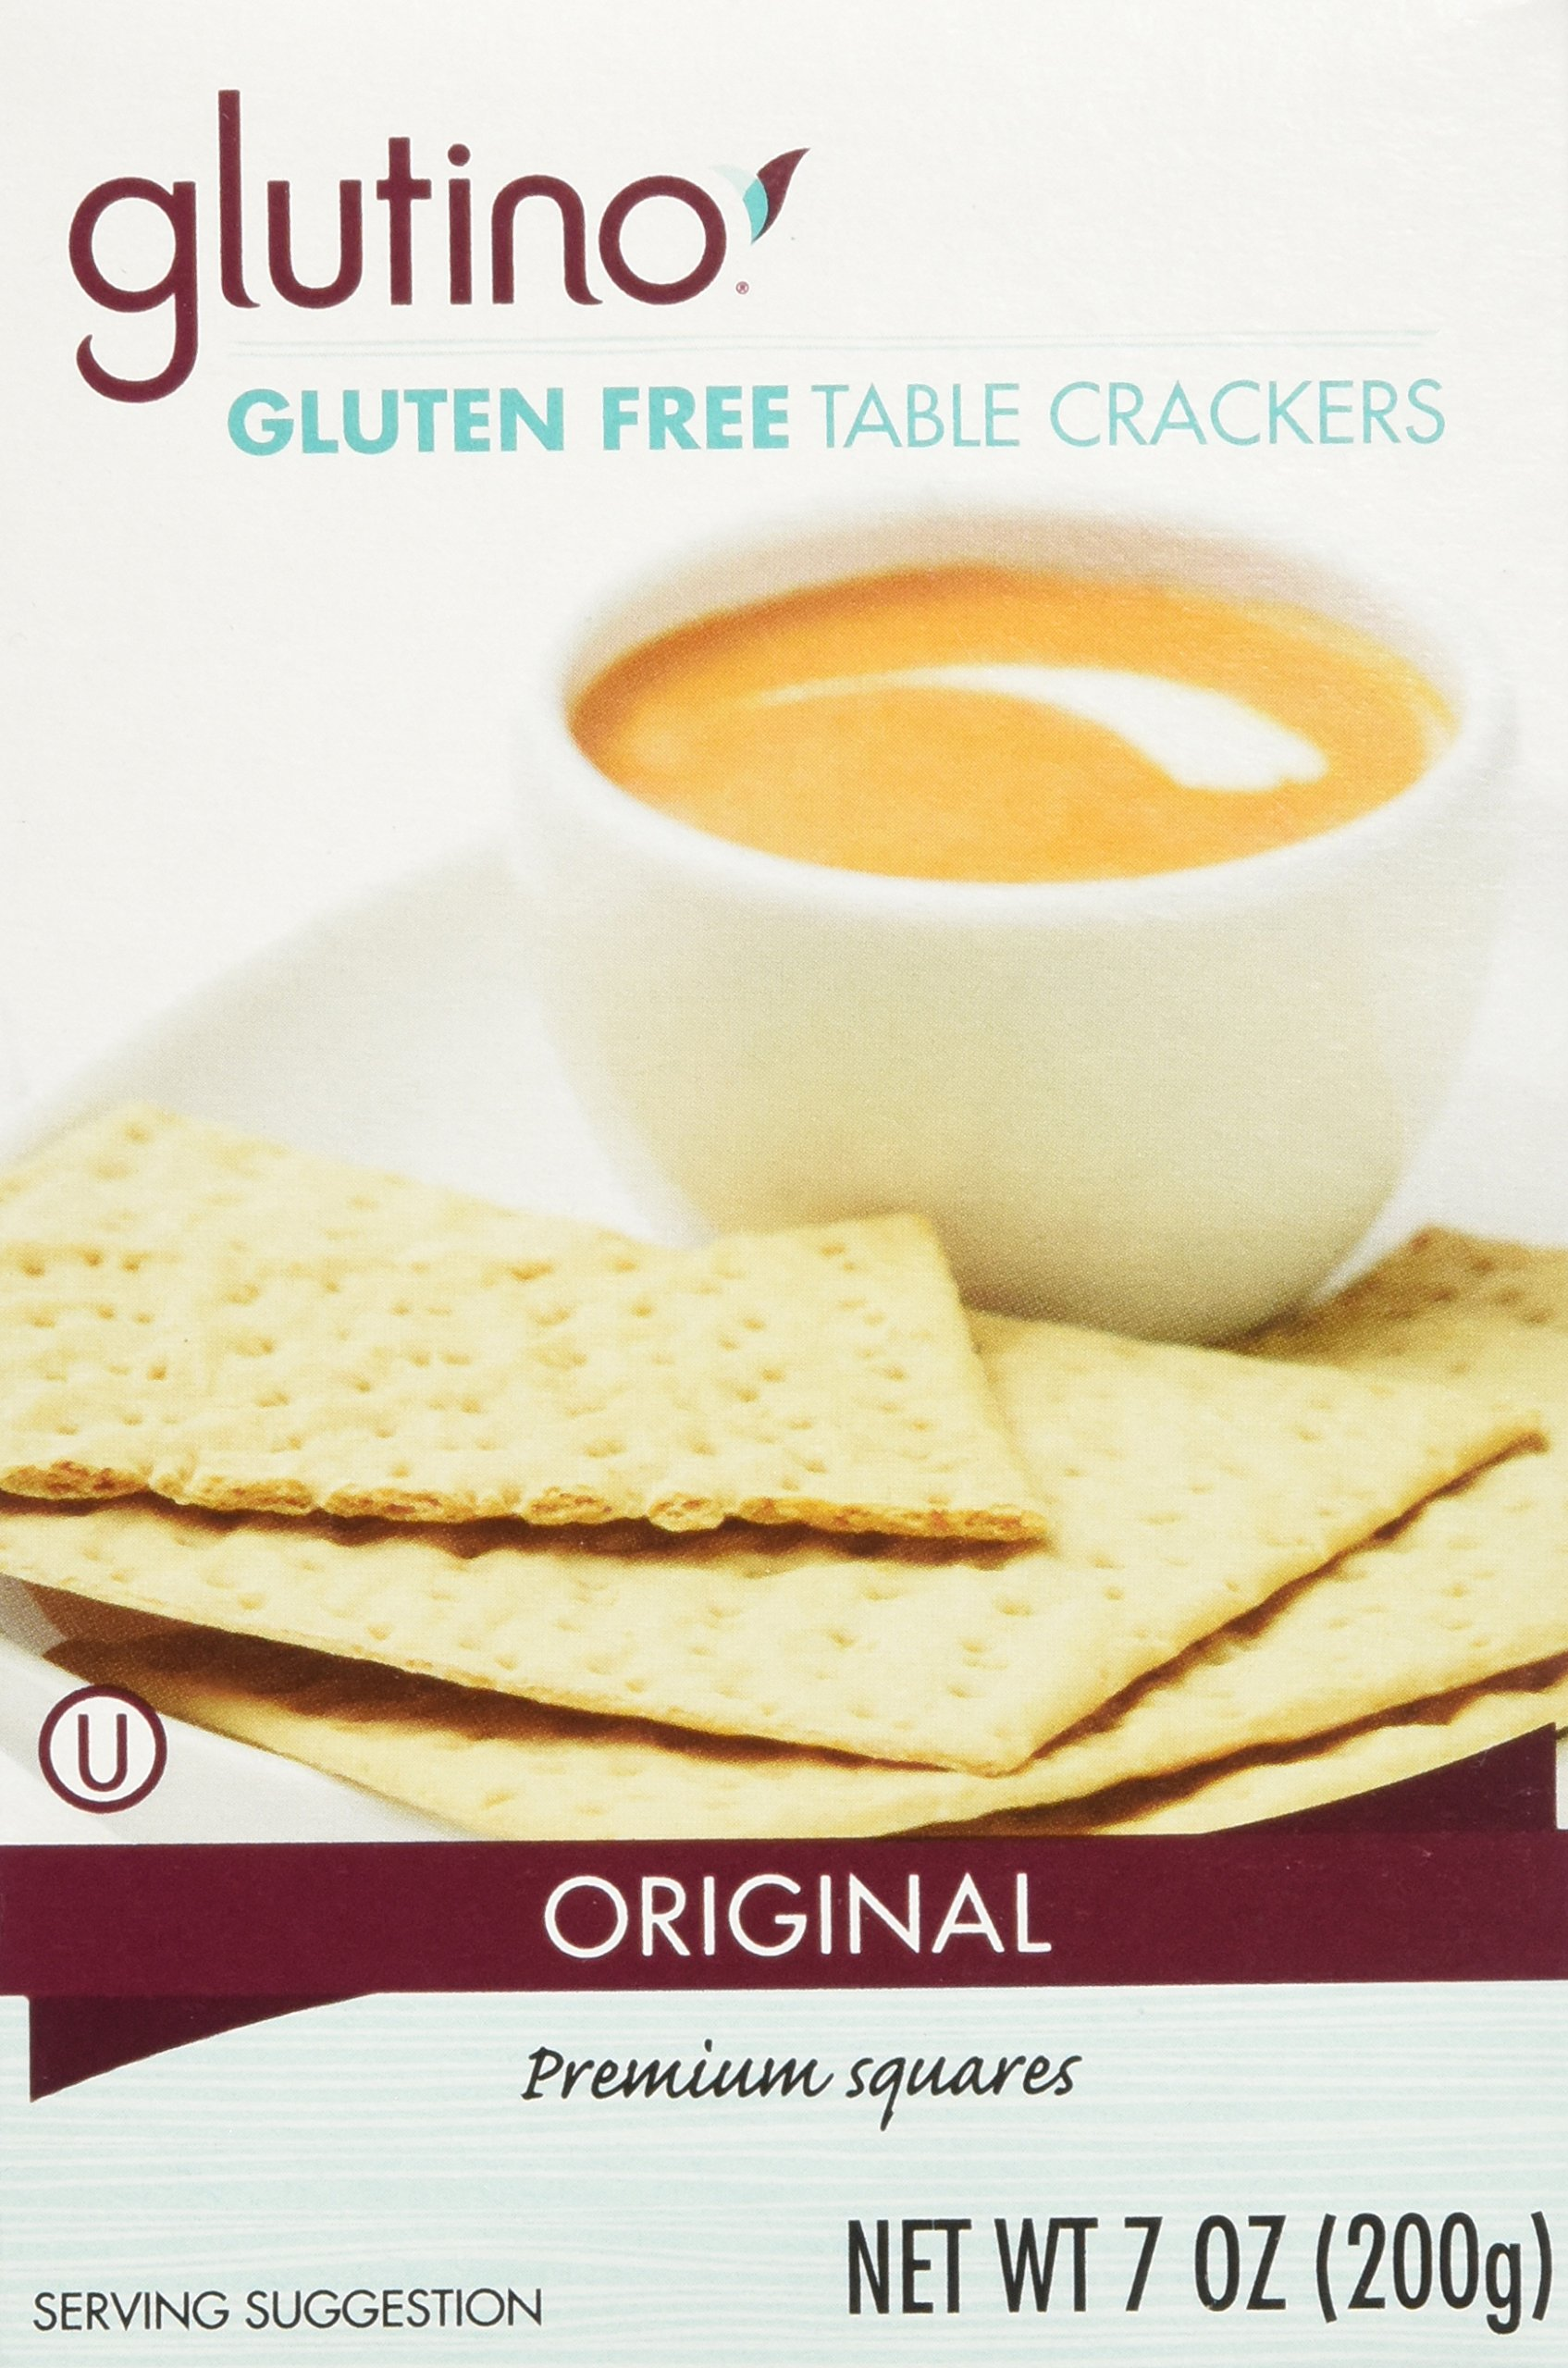 Glutino, Gluten Free Table Crackers 7 Oz , pack of 3 by Glutino